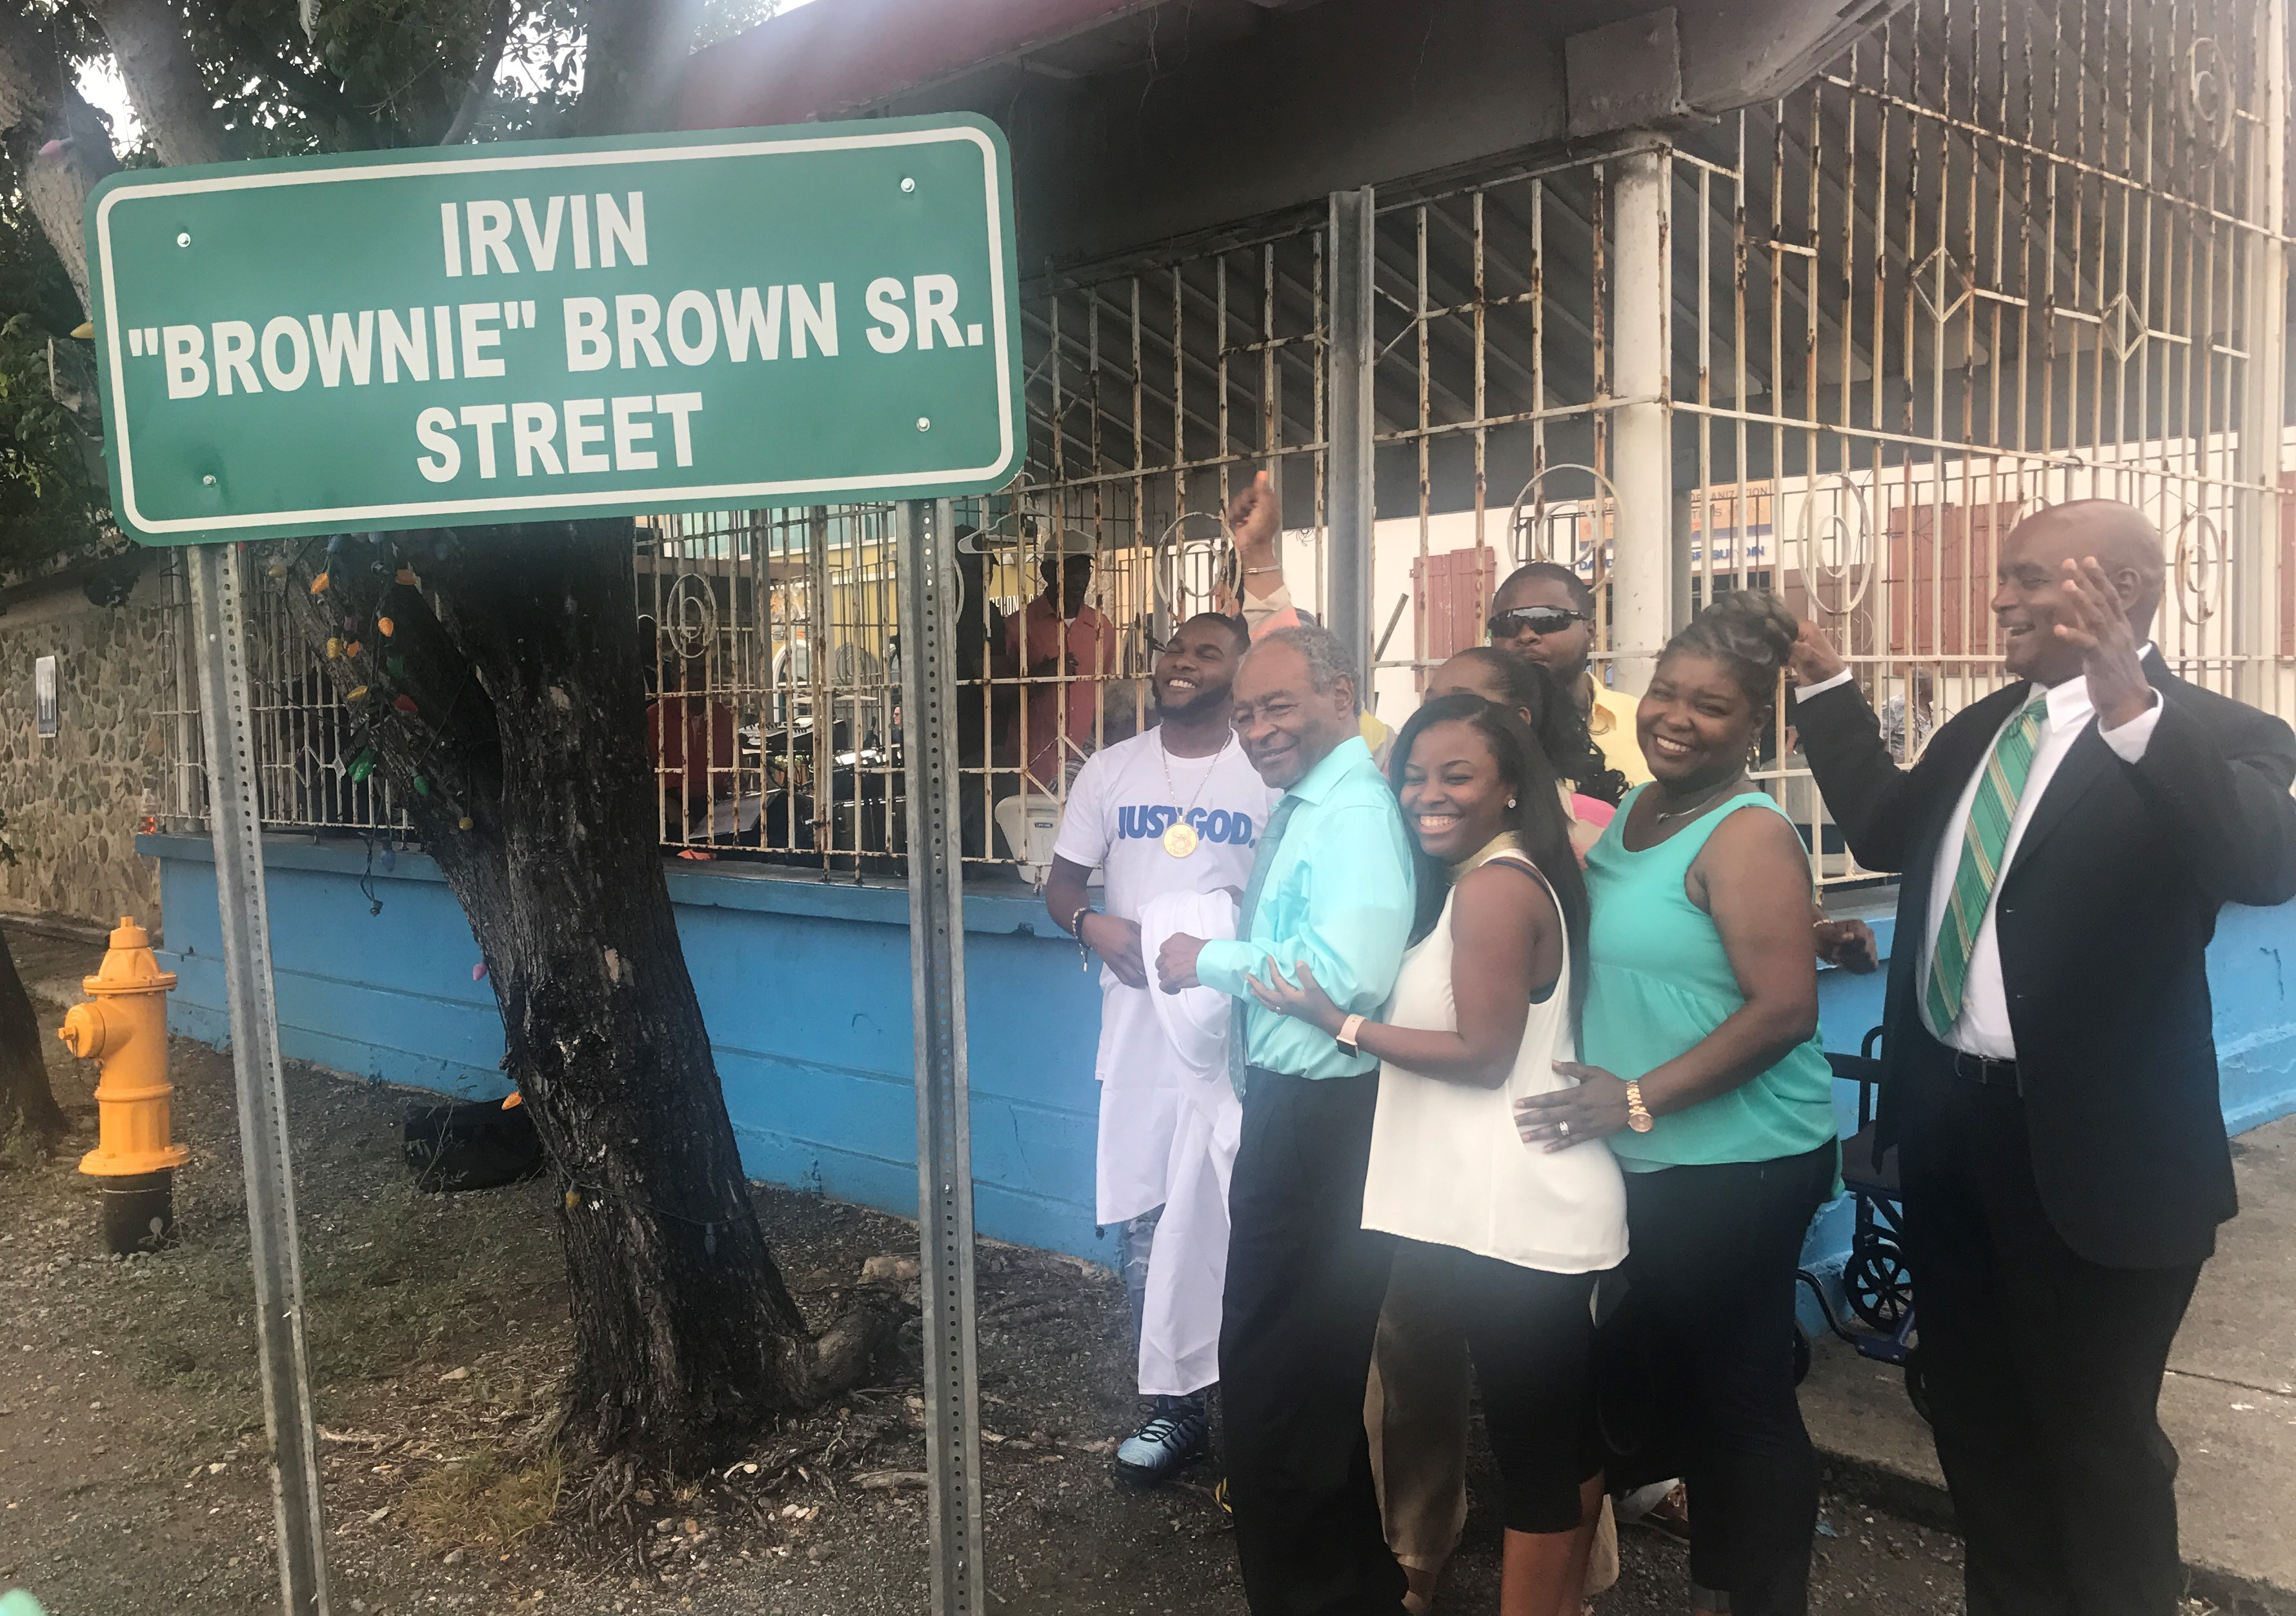 """Friends, family and admirers see unveiling of new sign naming Irvin  """"Brownie"""" Brown"""